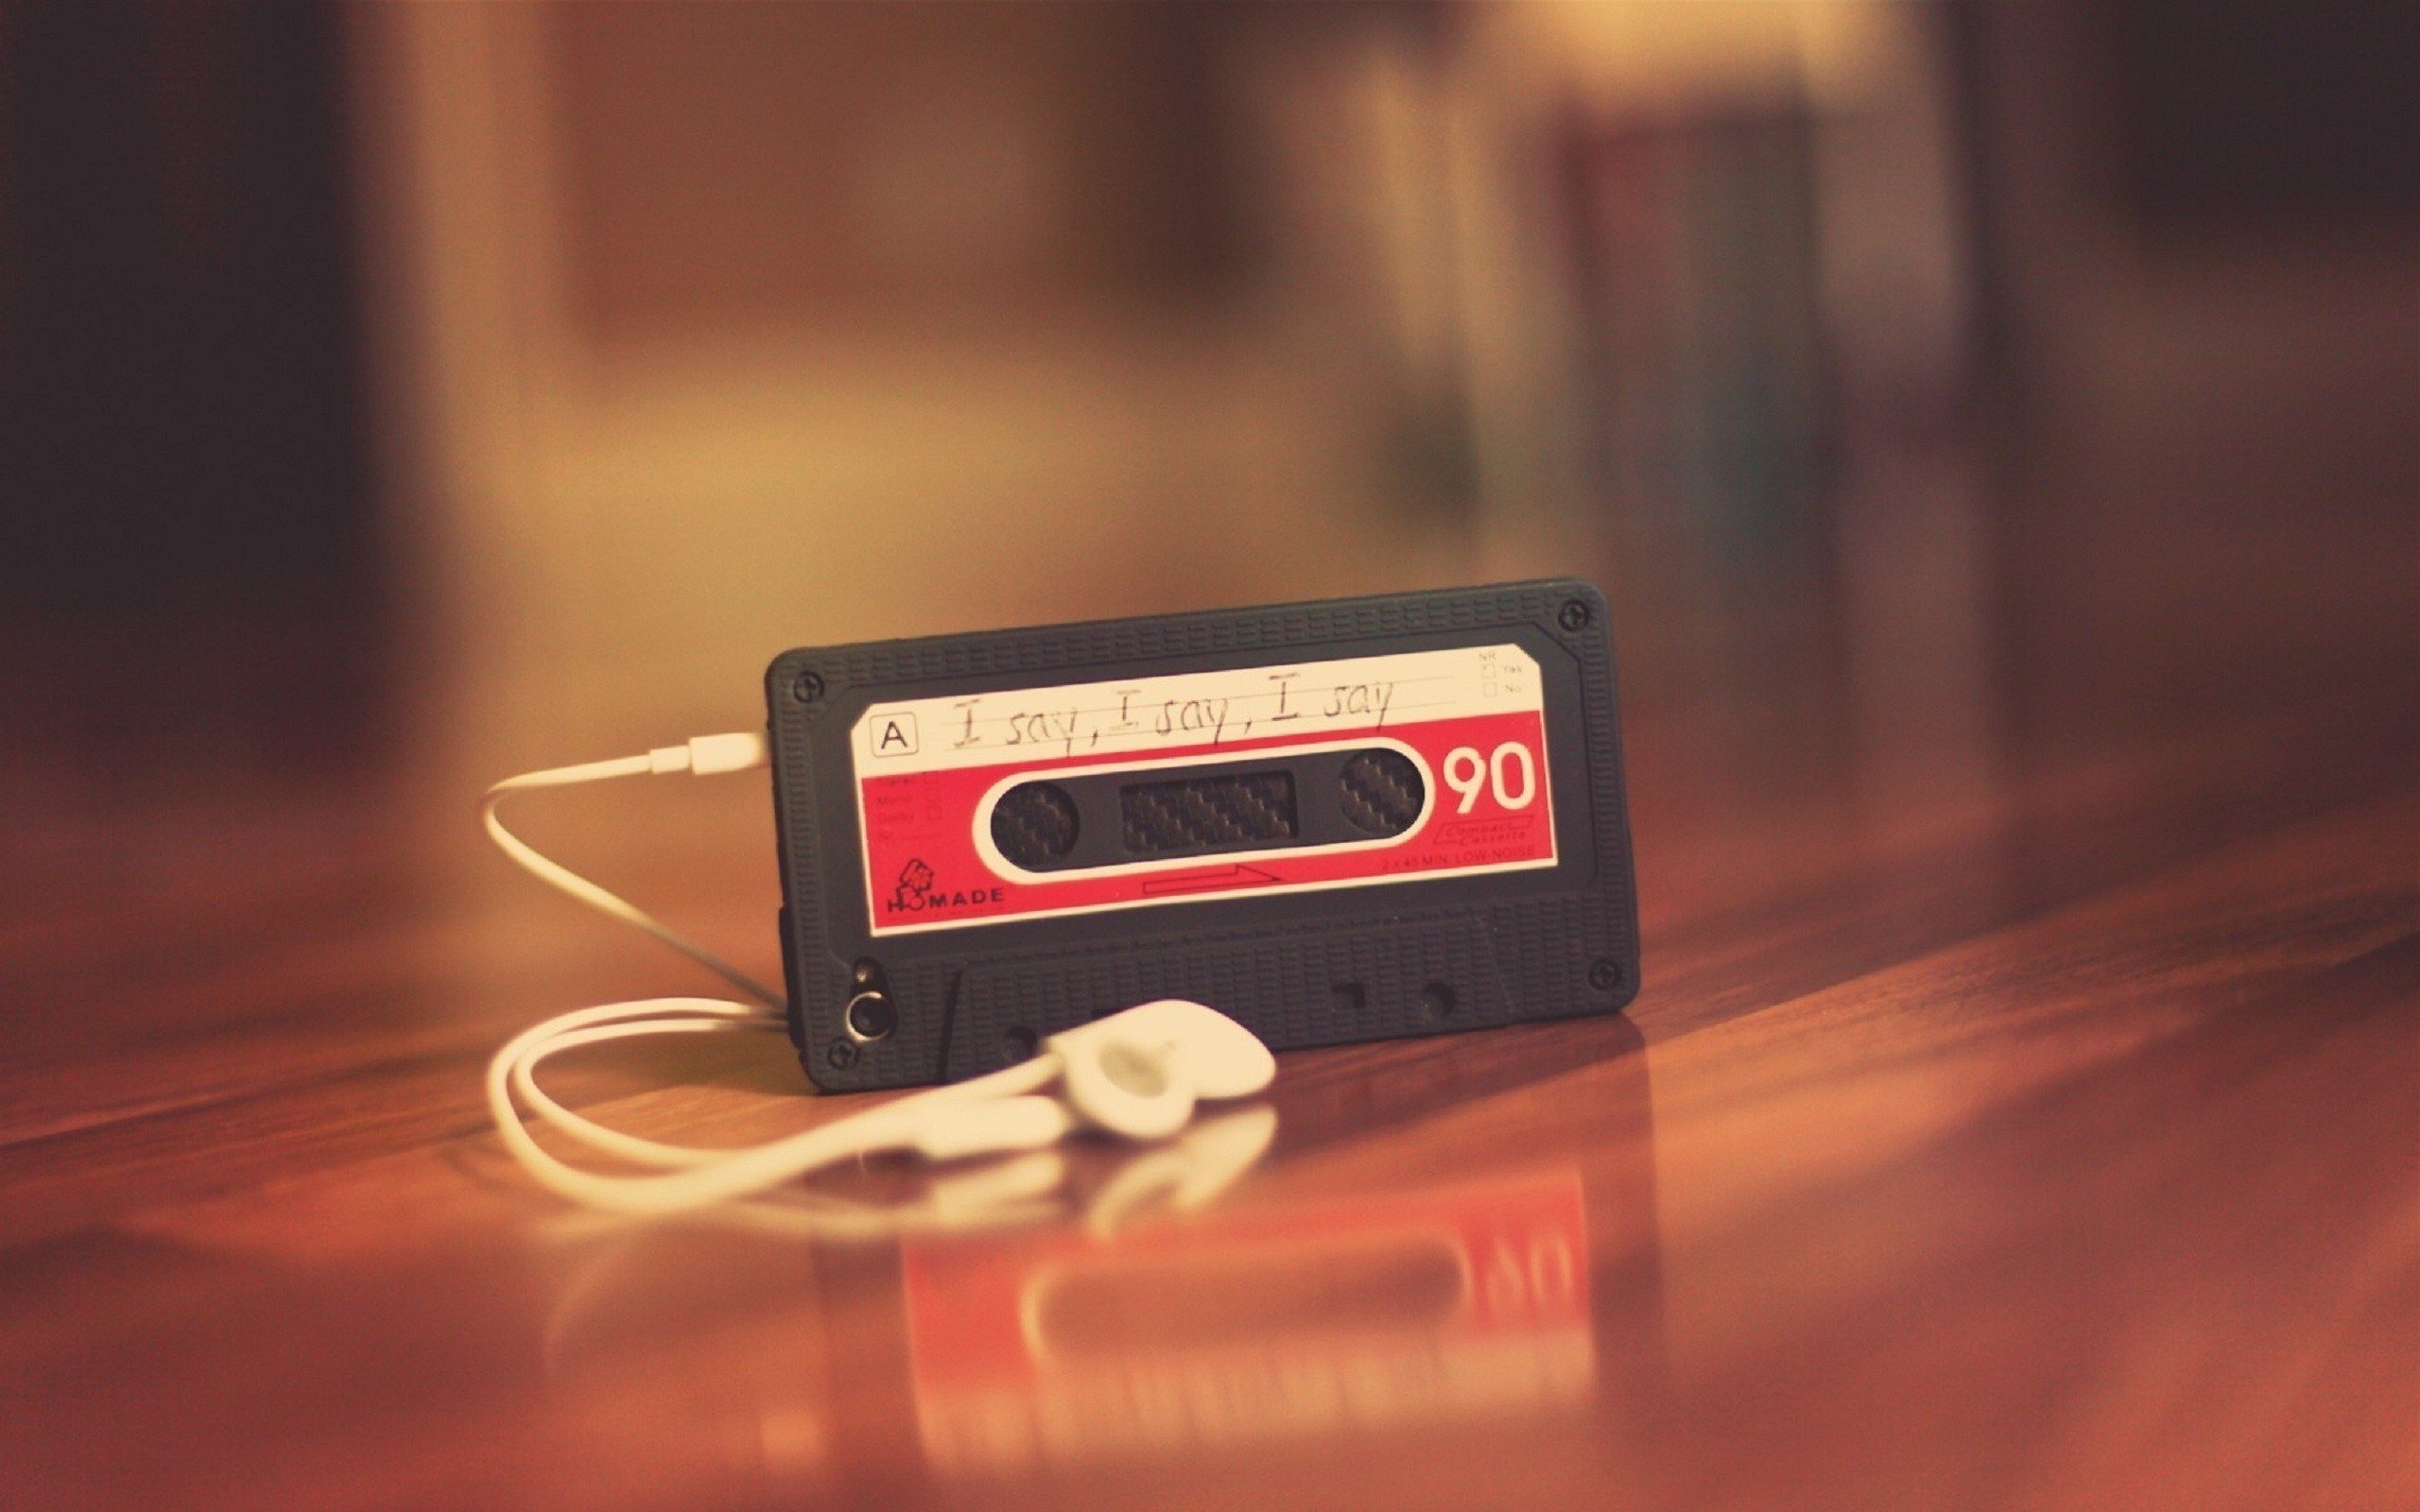 Download Wallpaper Music Headphone - cassette-player-headphones-music-mood-photo-1  Snapshot_524577.jpg